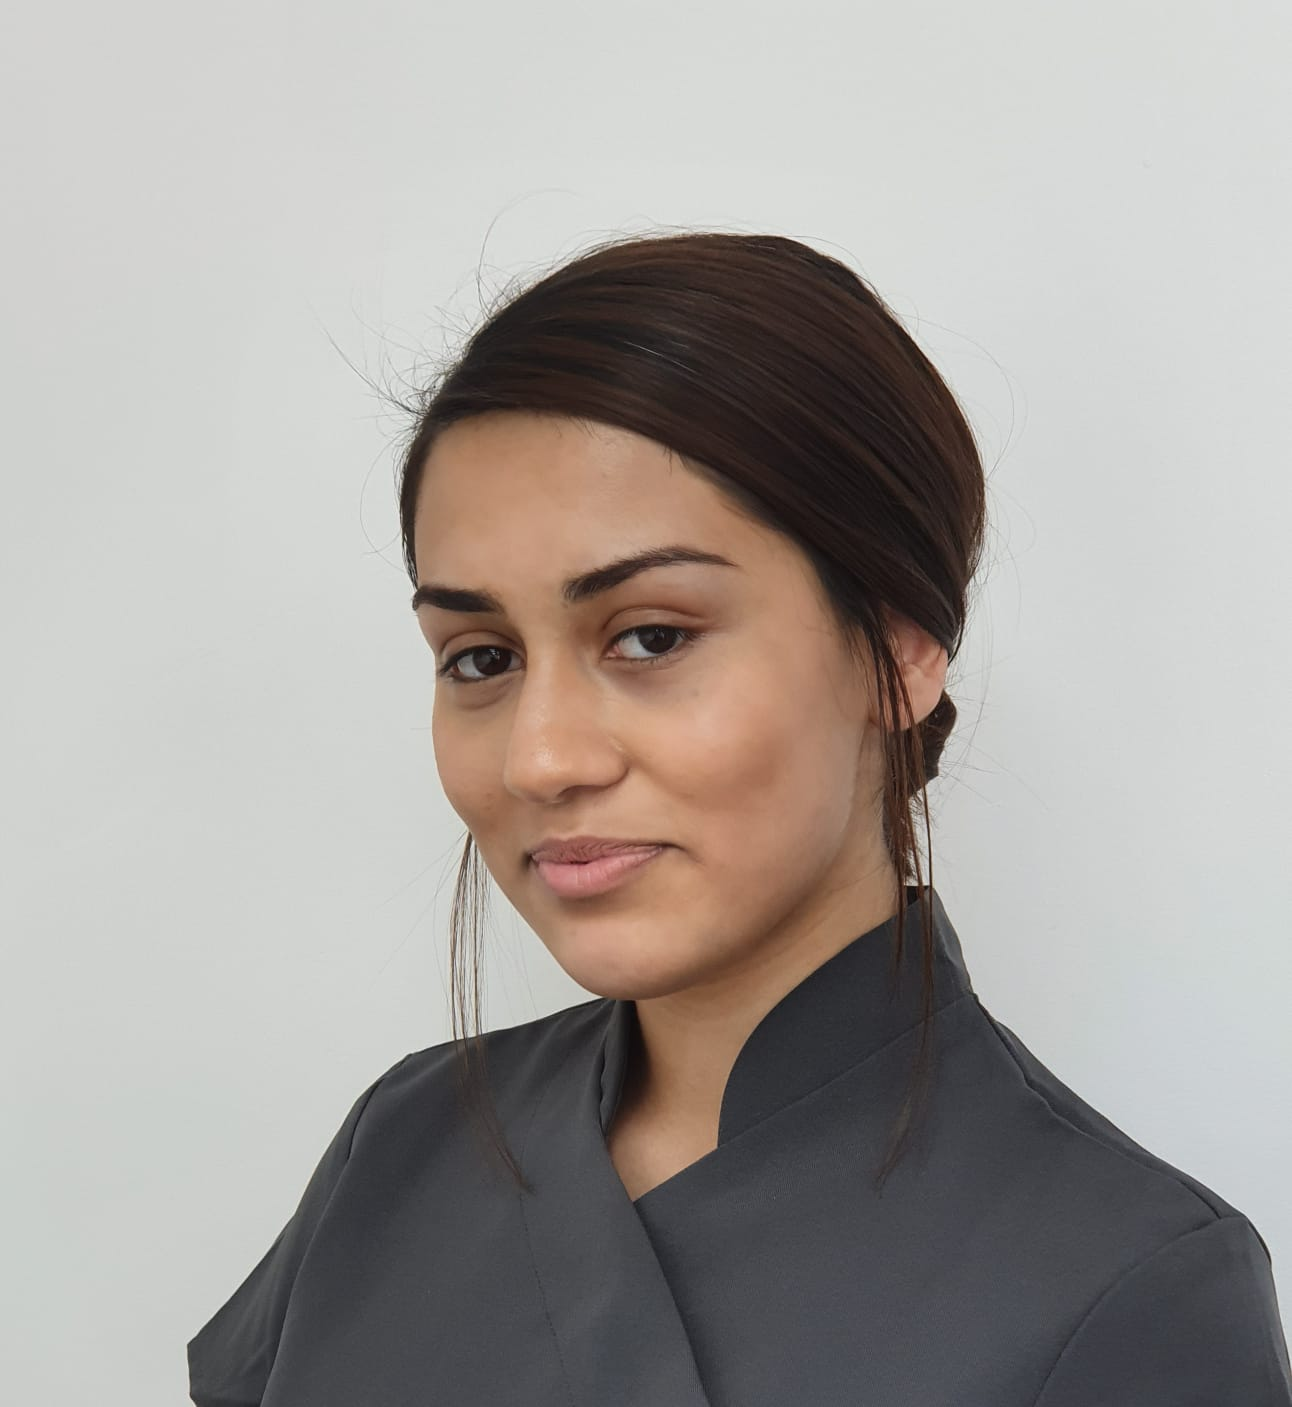 Aisha Saleem is a Trainee Dental Nurse at Etwall Dental Practice